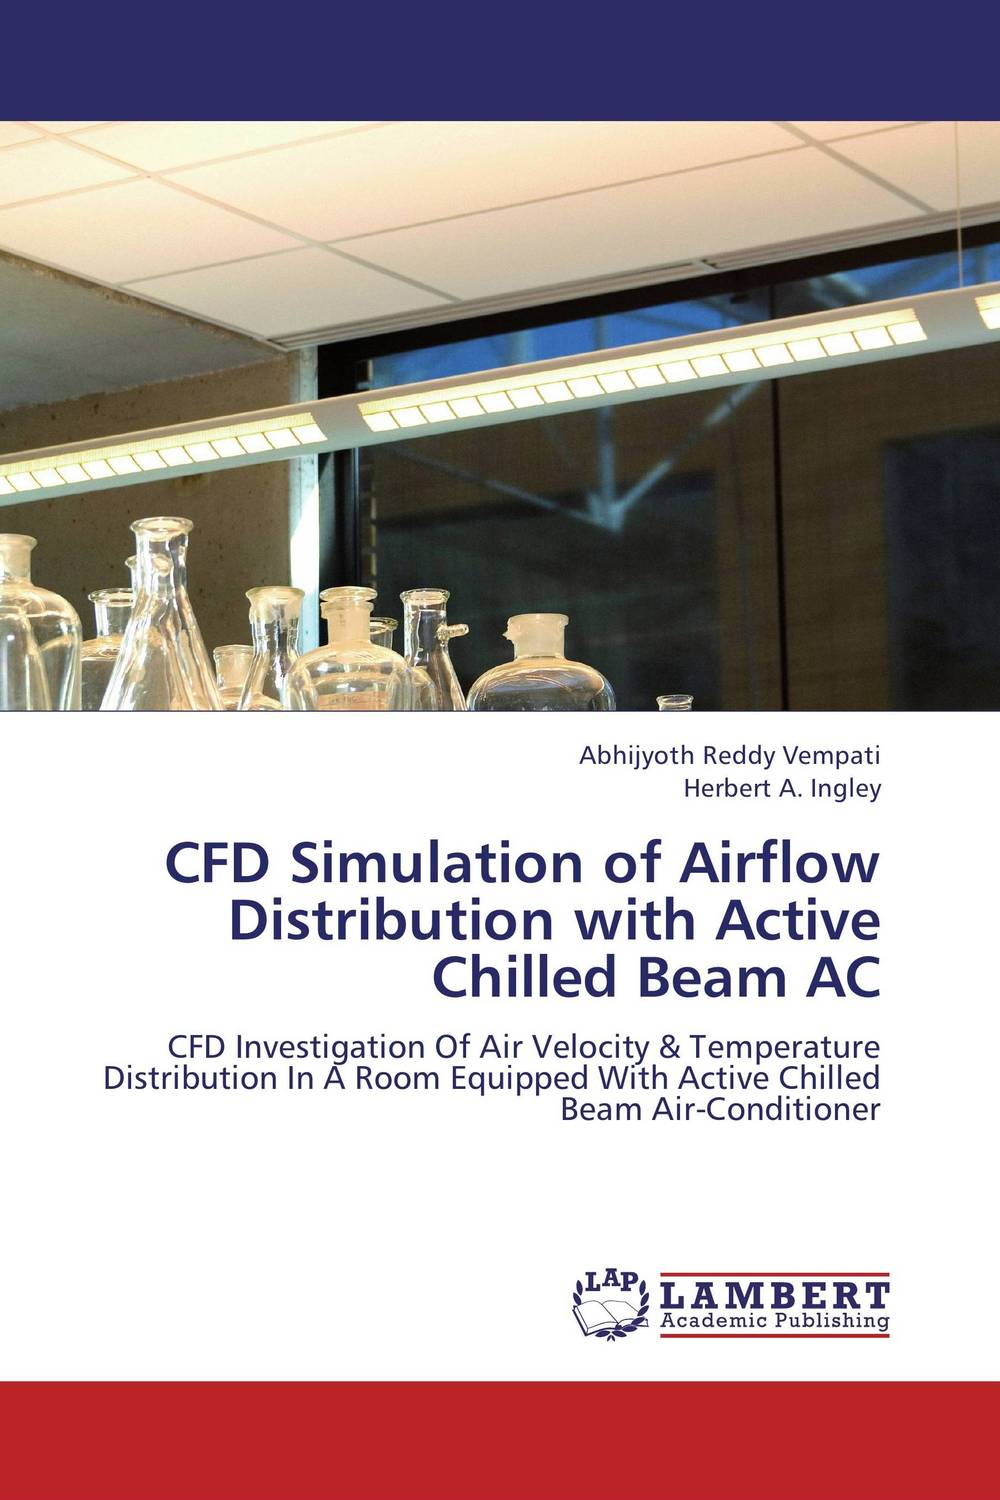 CFD Simulation of Airflow Distribution with Active Chilled Beam AC fda 489 replaceable core filter driers are designed to be used in the liquid and suction lines of air conditioning systems